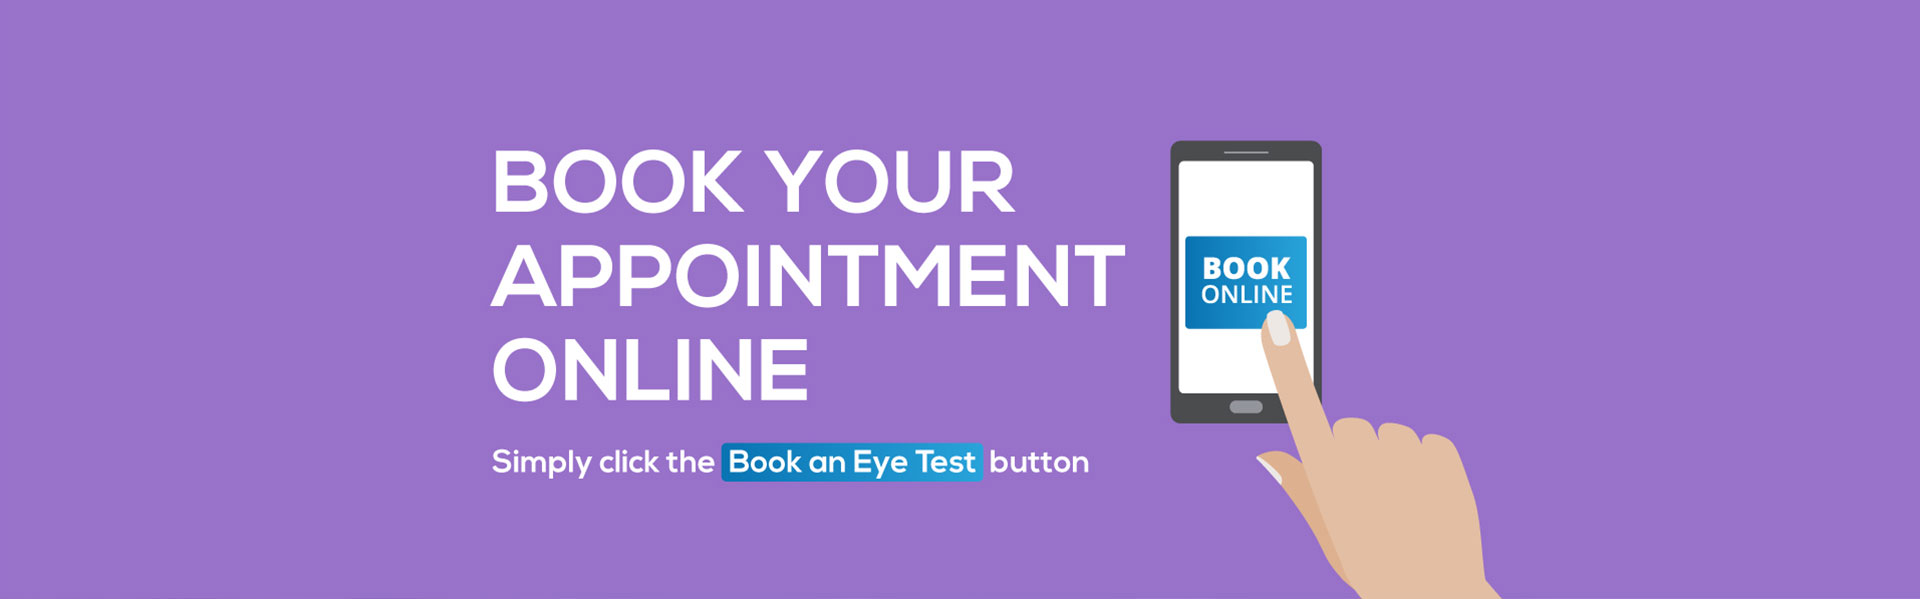 banner for online appointment booking